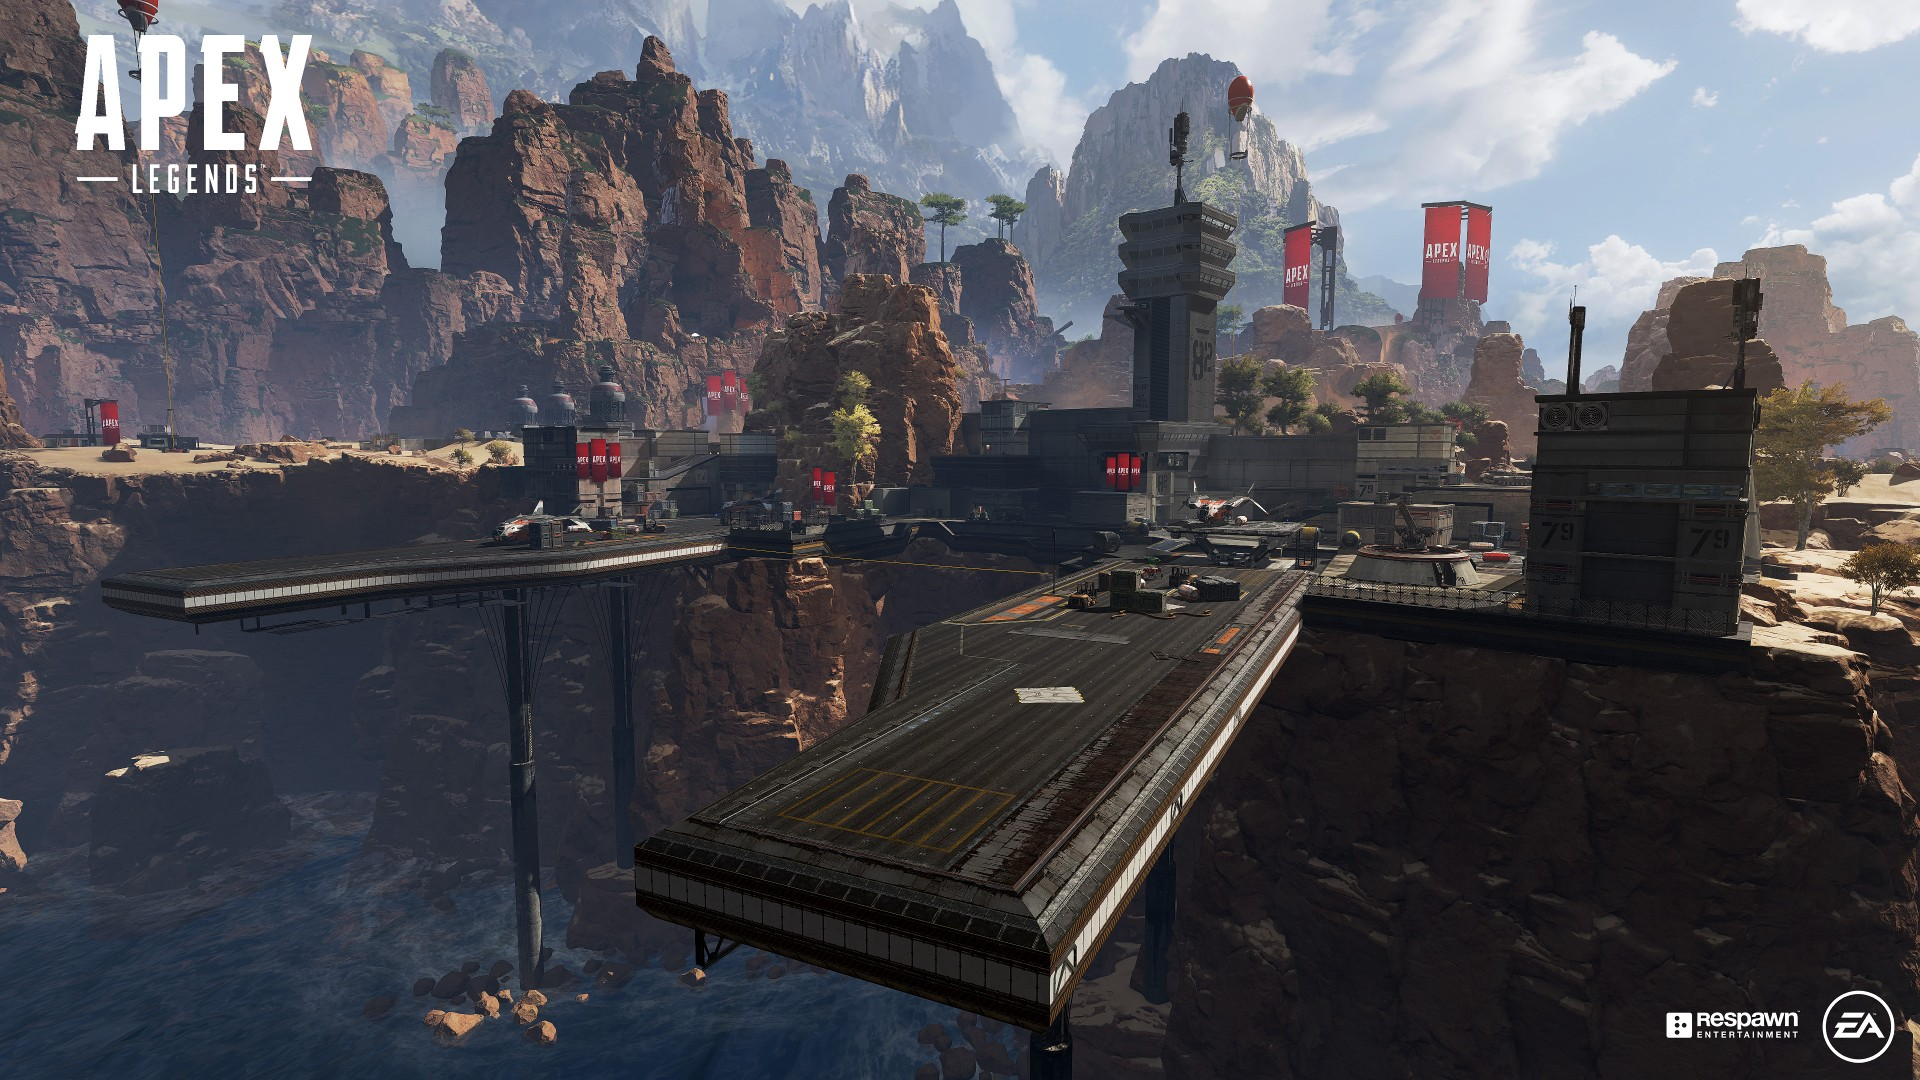 Kings Canyon returns to Apex's map rotation for the weekend